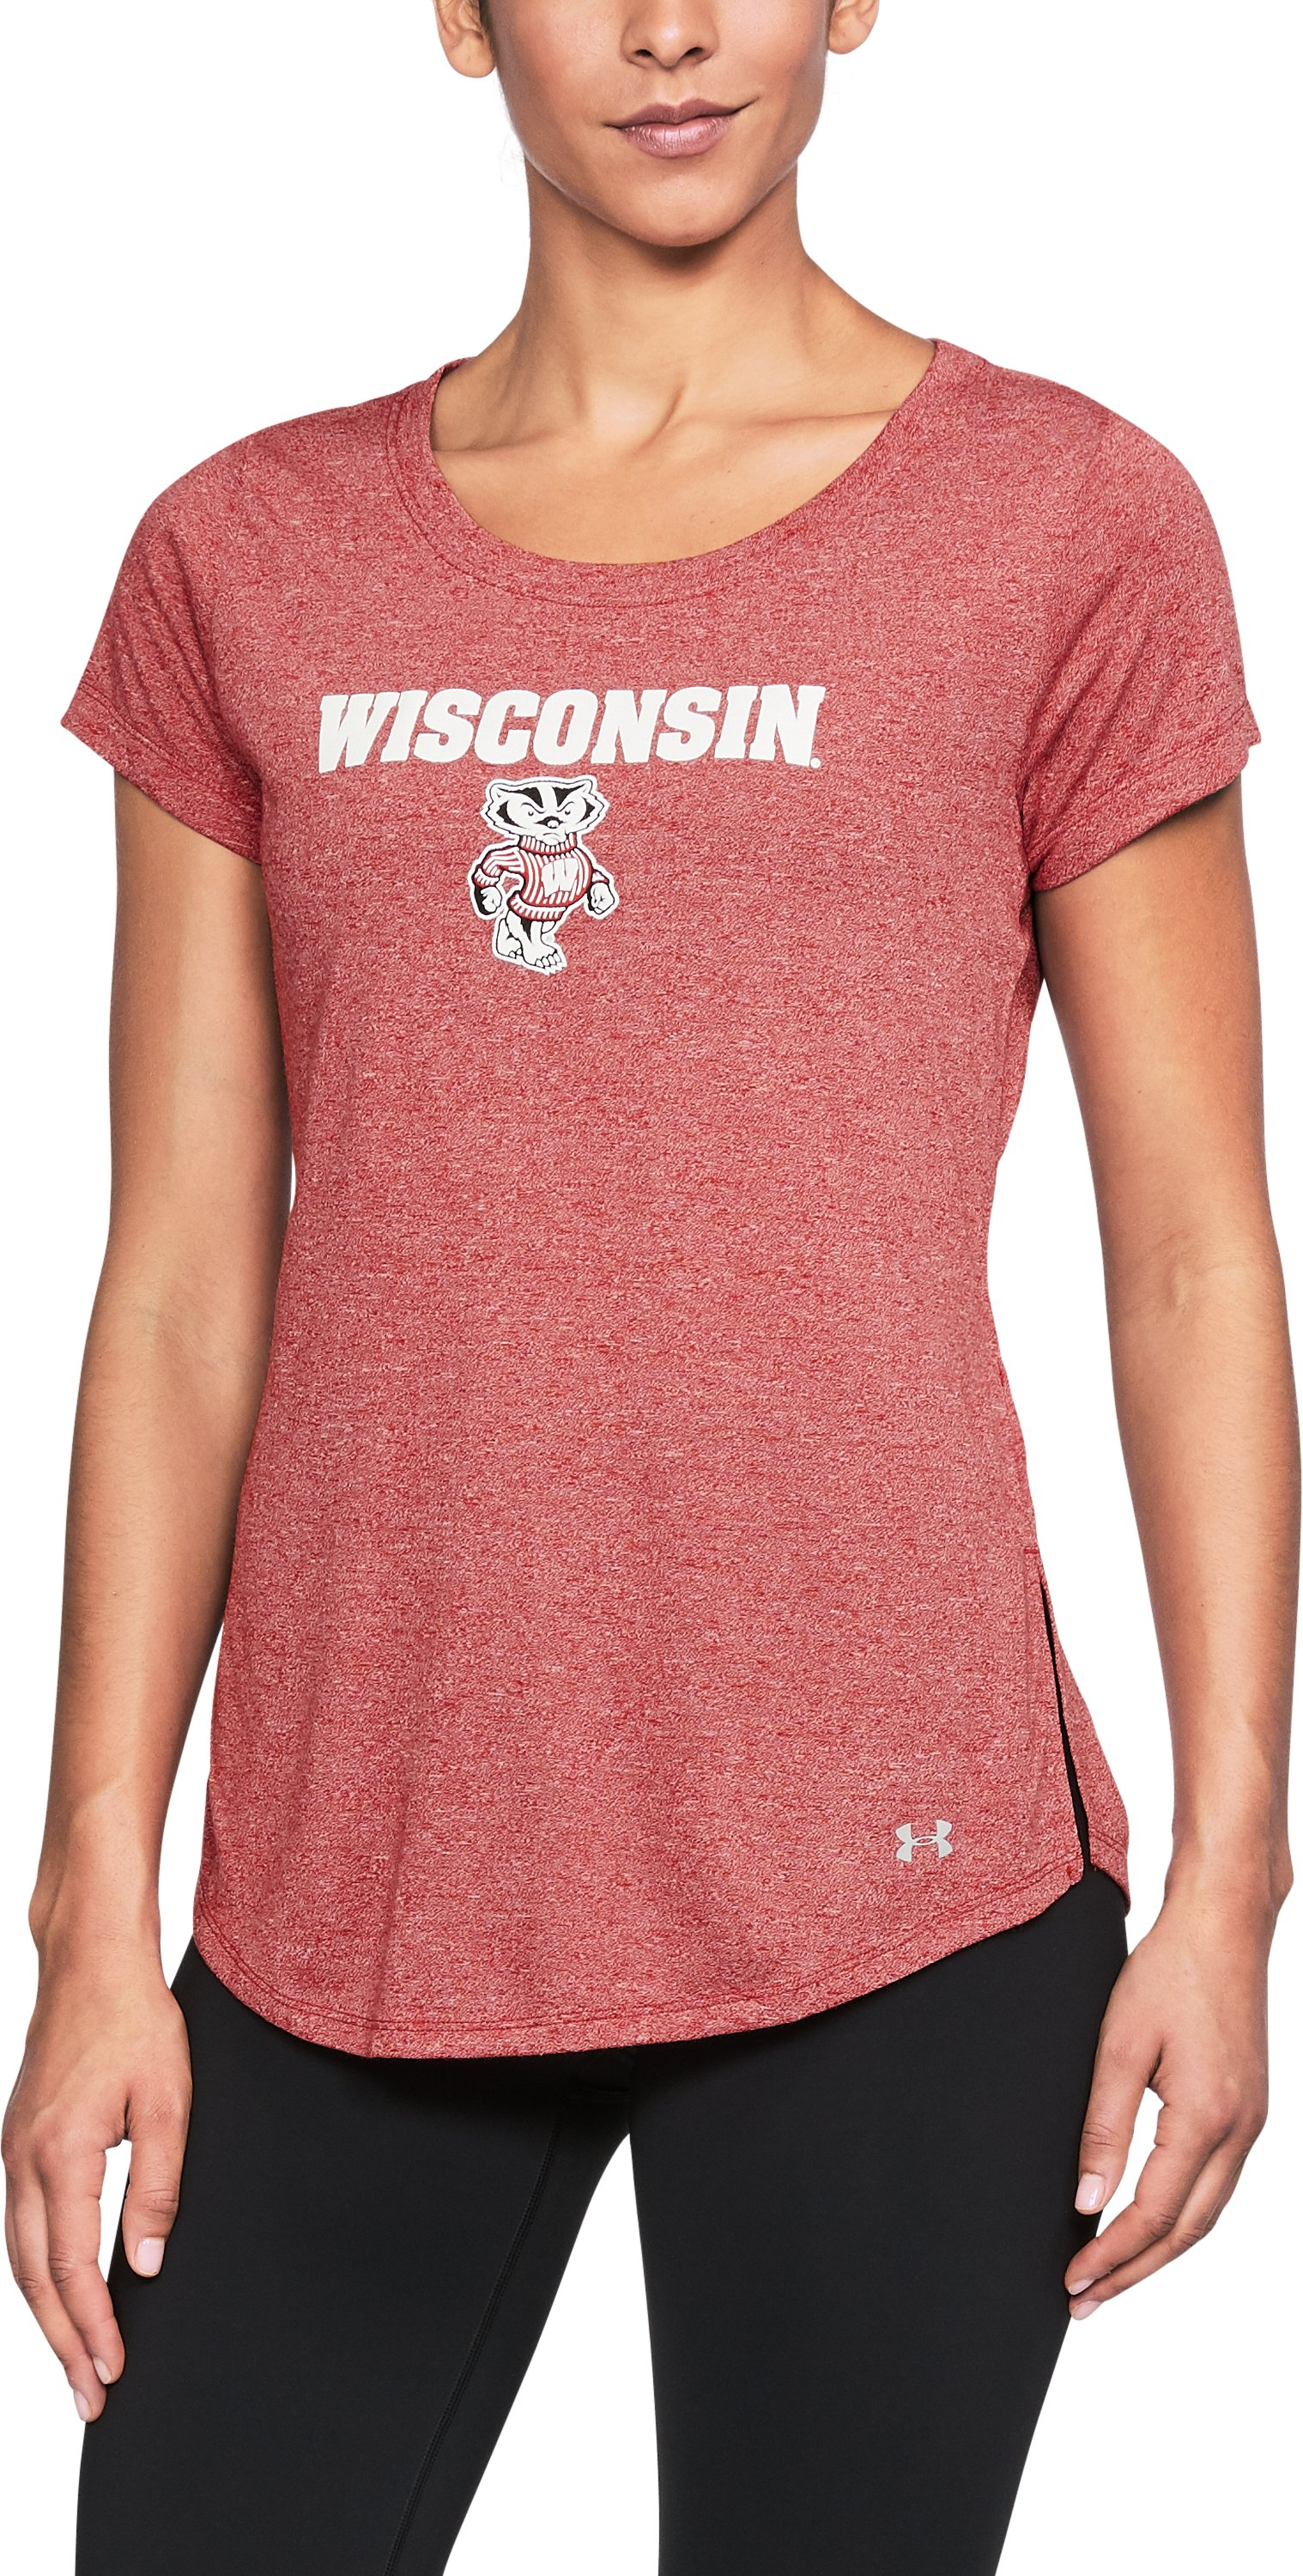 Women's Wisconsin Charged Cotton® Short Sleeve T-Shirt, Flawless